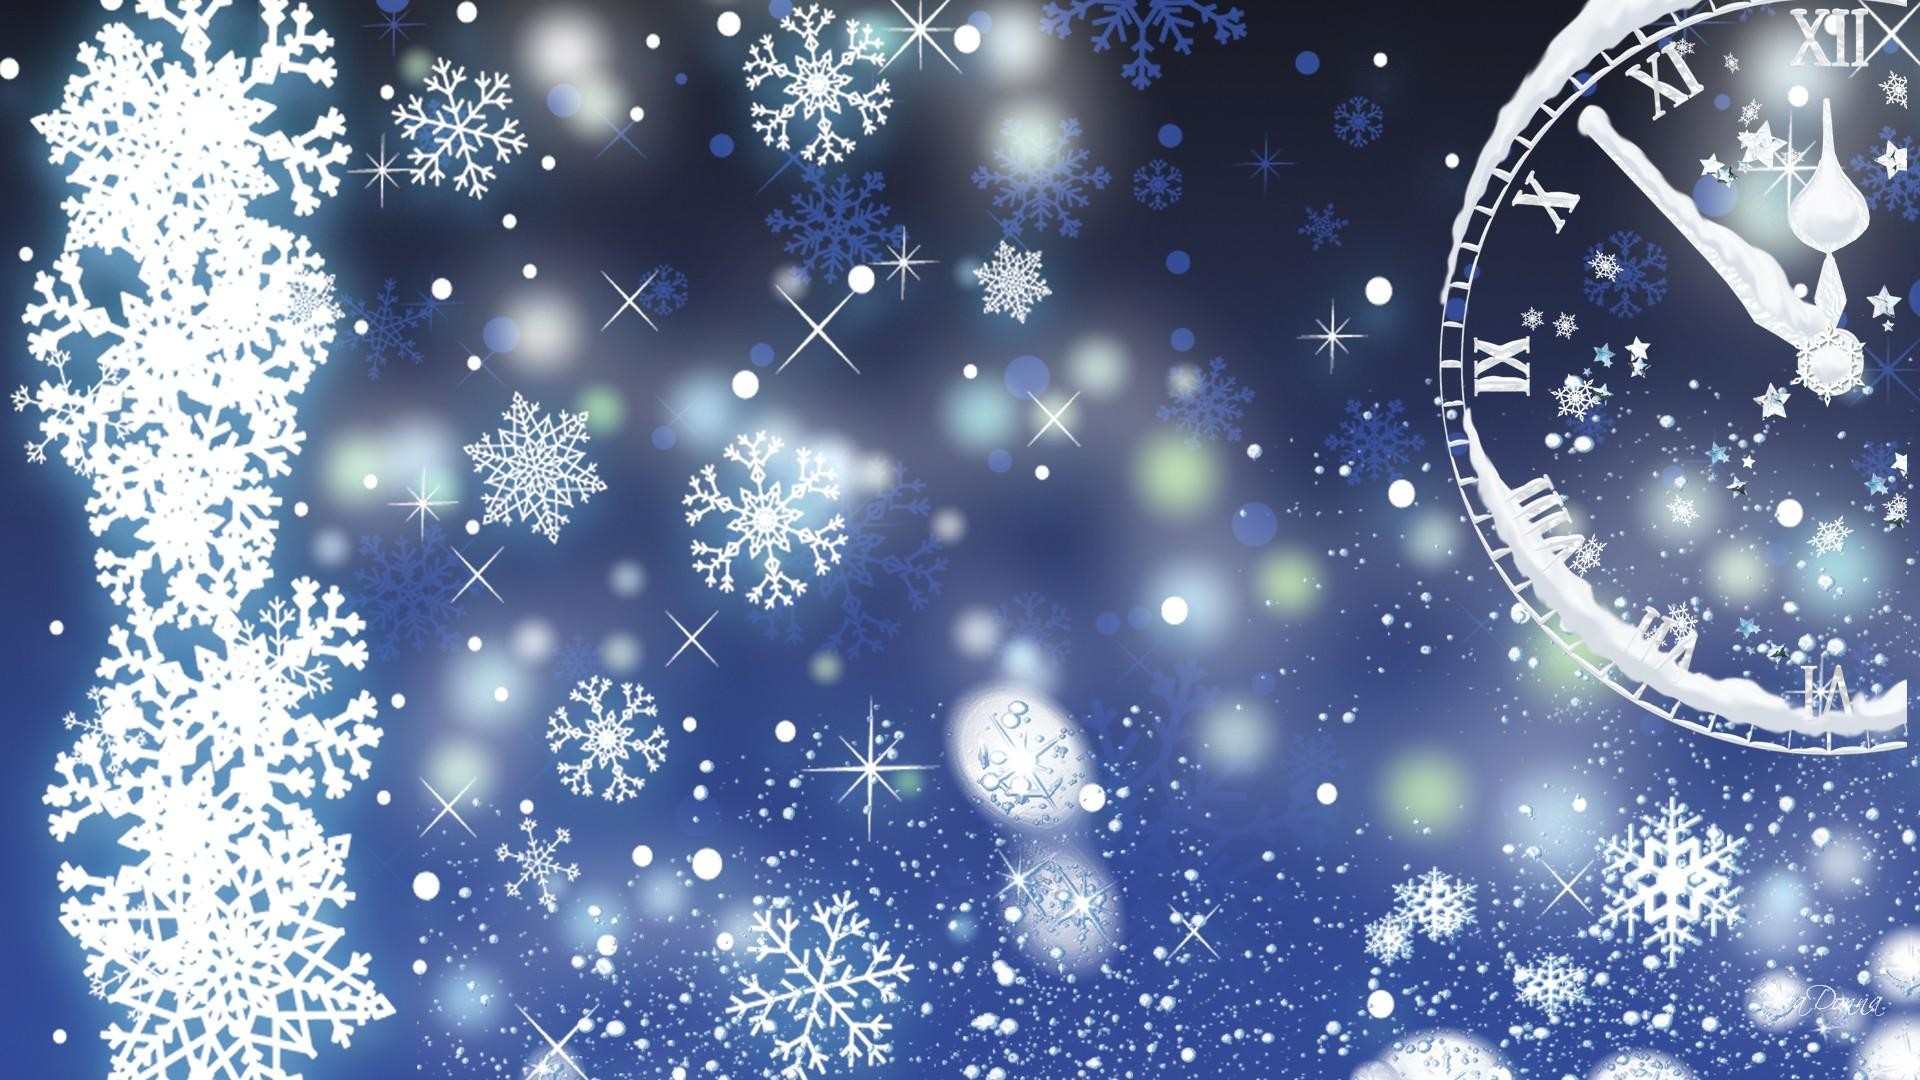 Wallpaper New Years Eve ·①